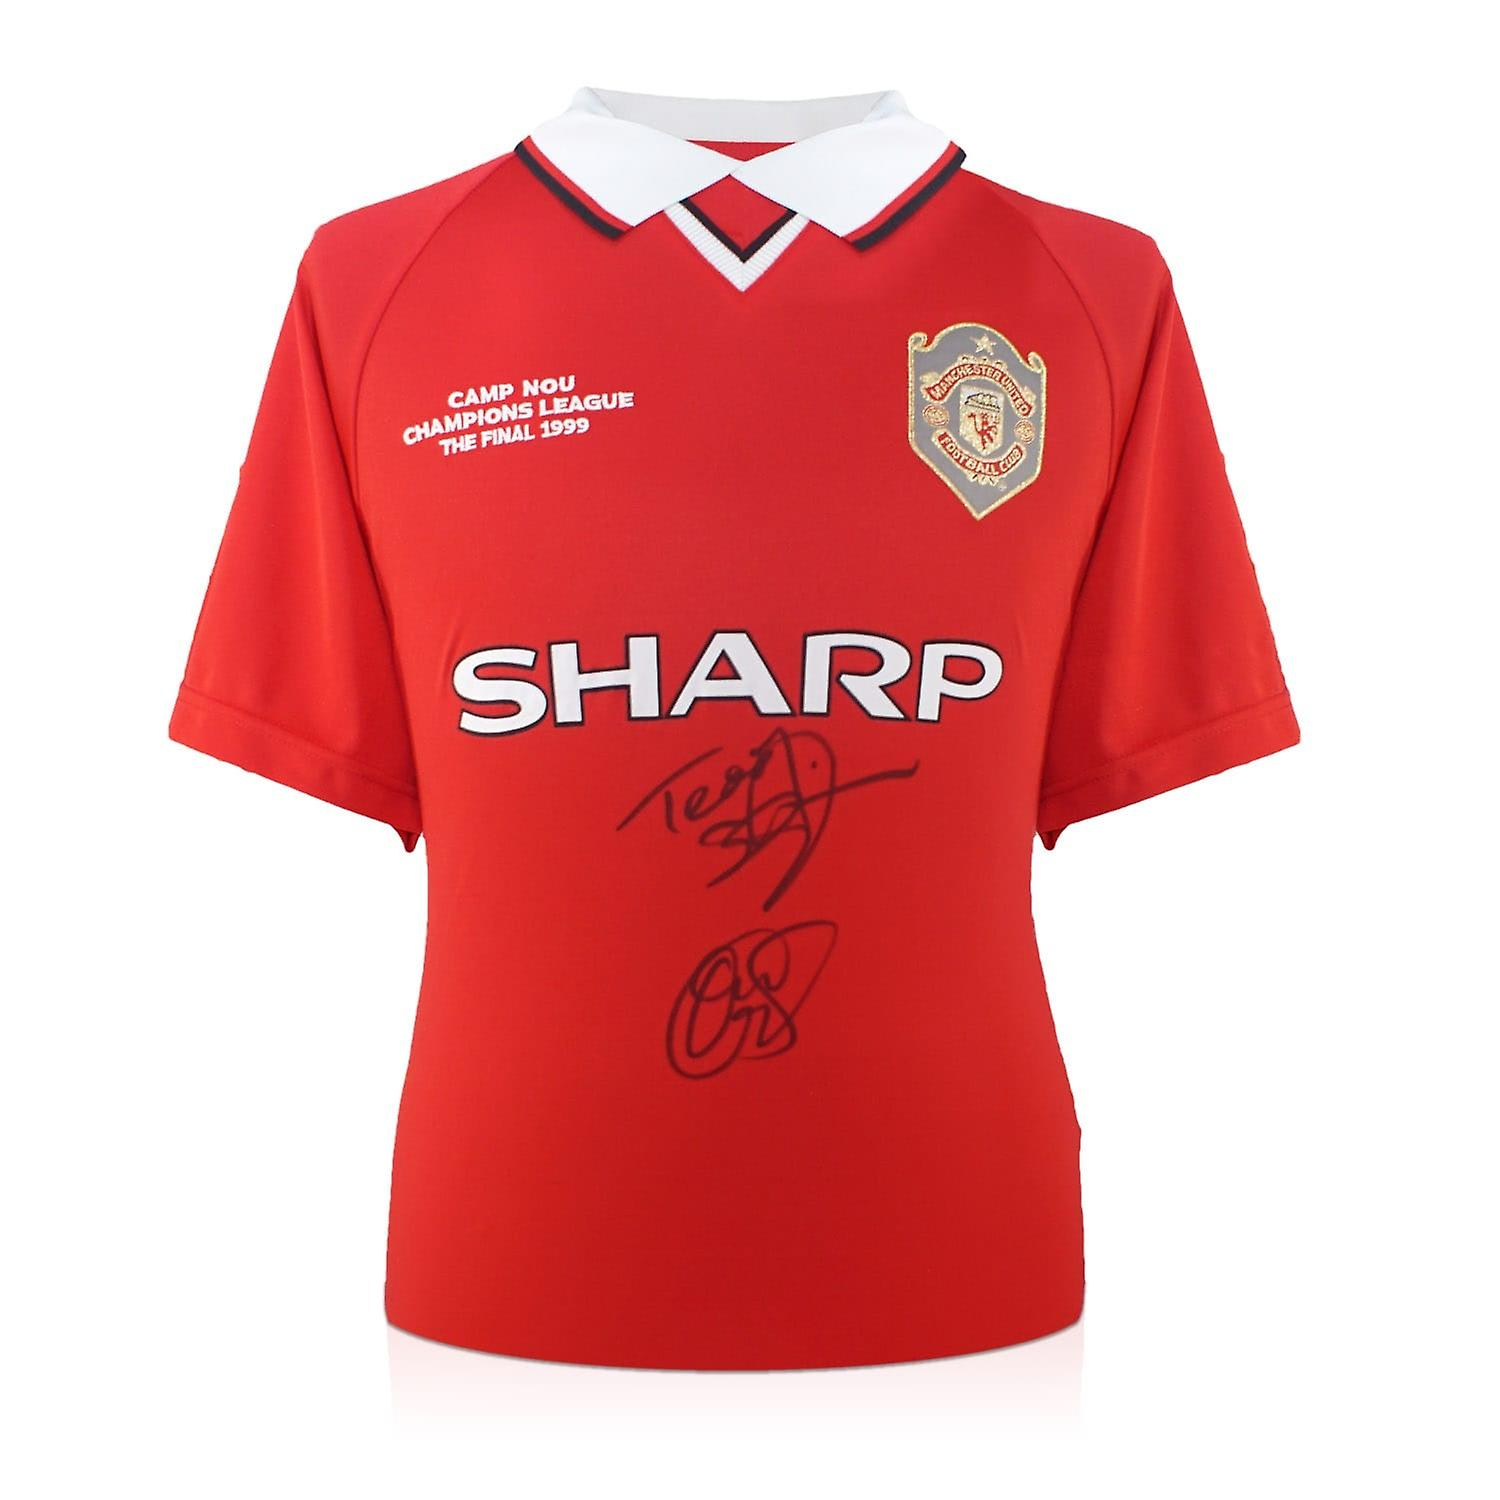 Teddy Sheringham And Ole Gunnar Solskjaer Signed 1999 Manchester United Champions League Shirt